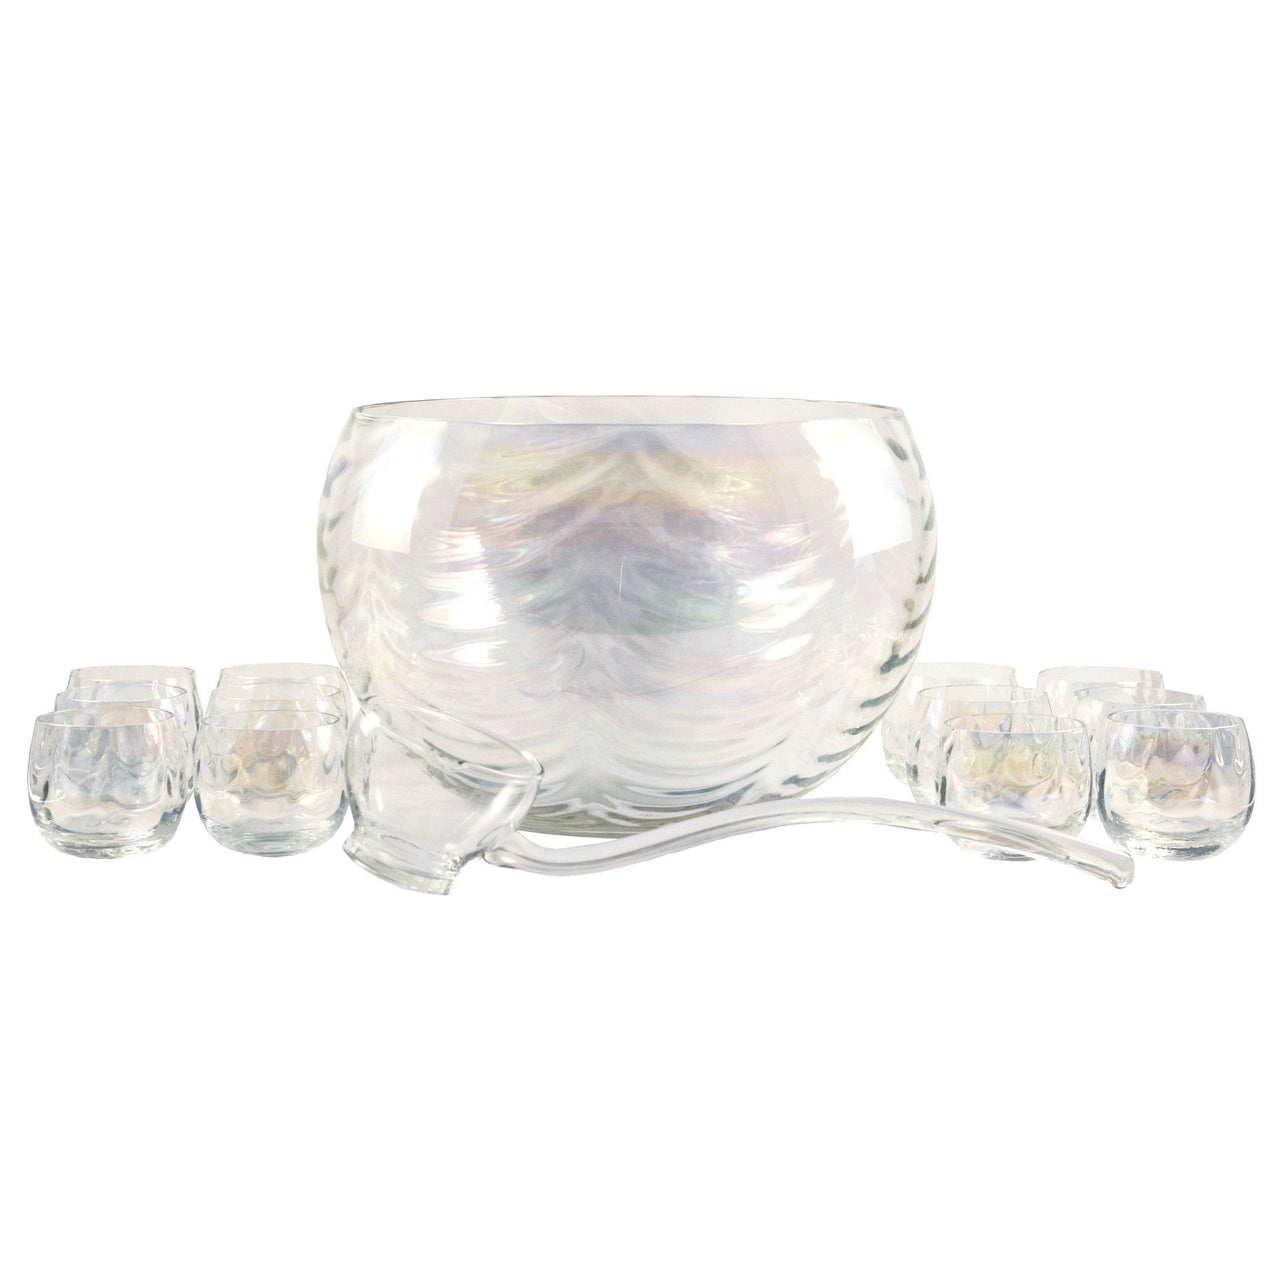 Vintage Iridescent Glass Punch Bowl Set, The Hour Shop